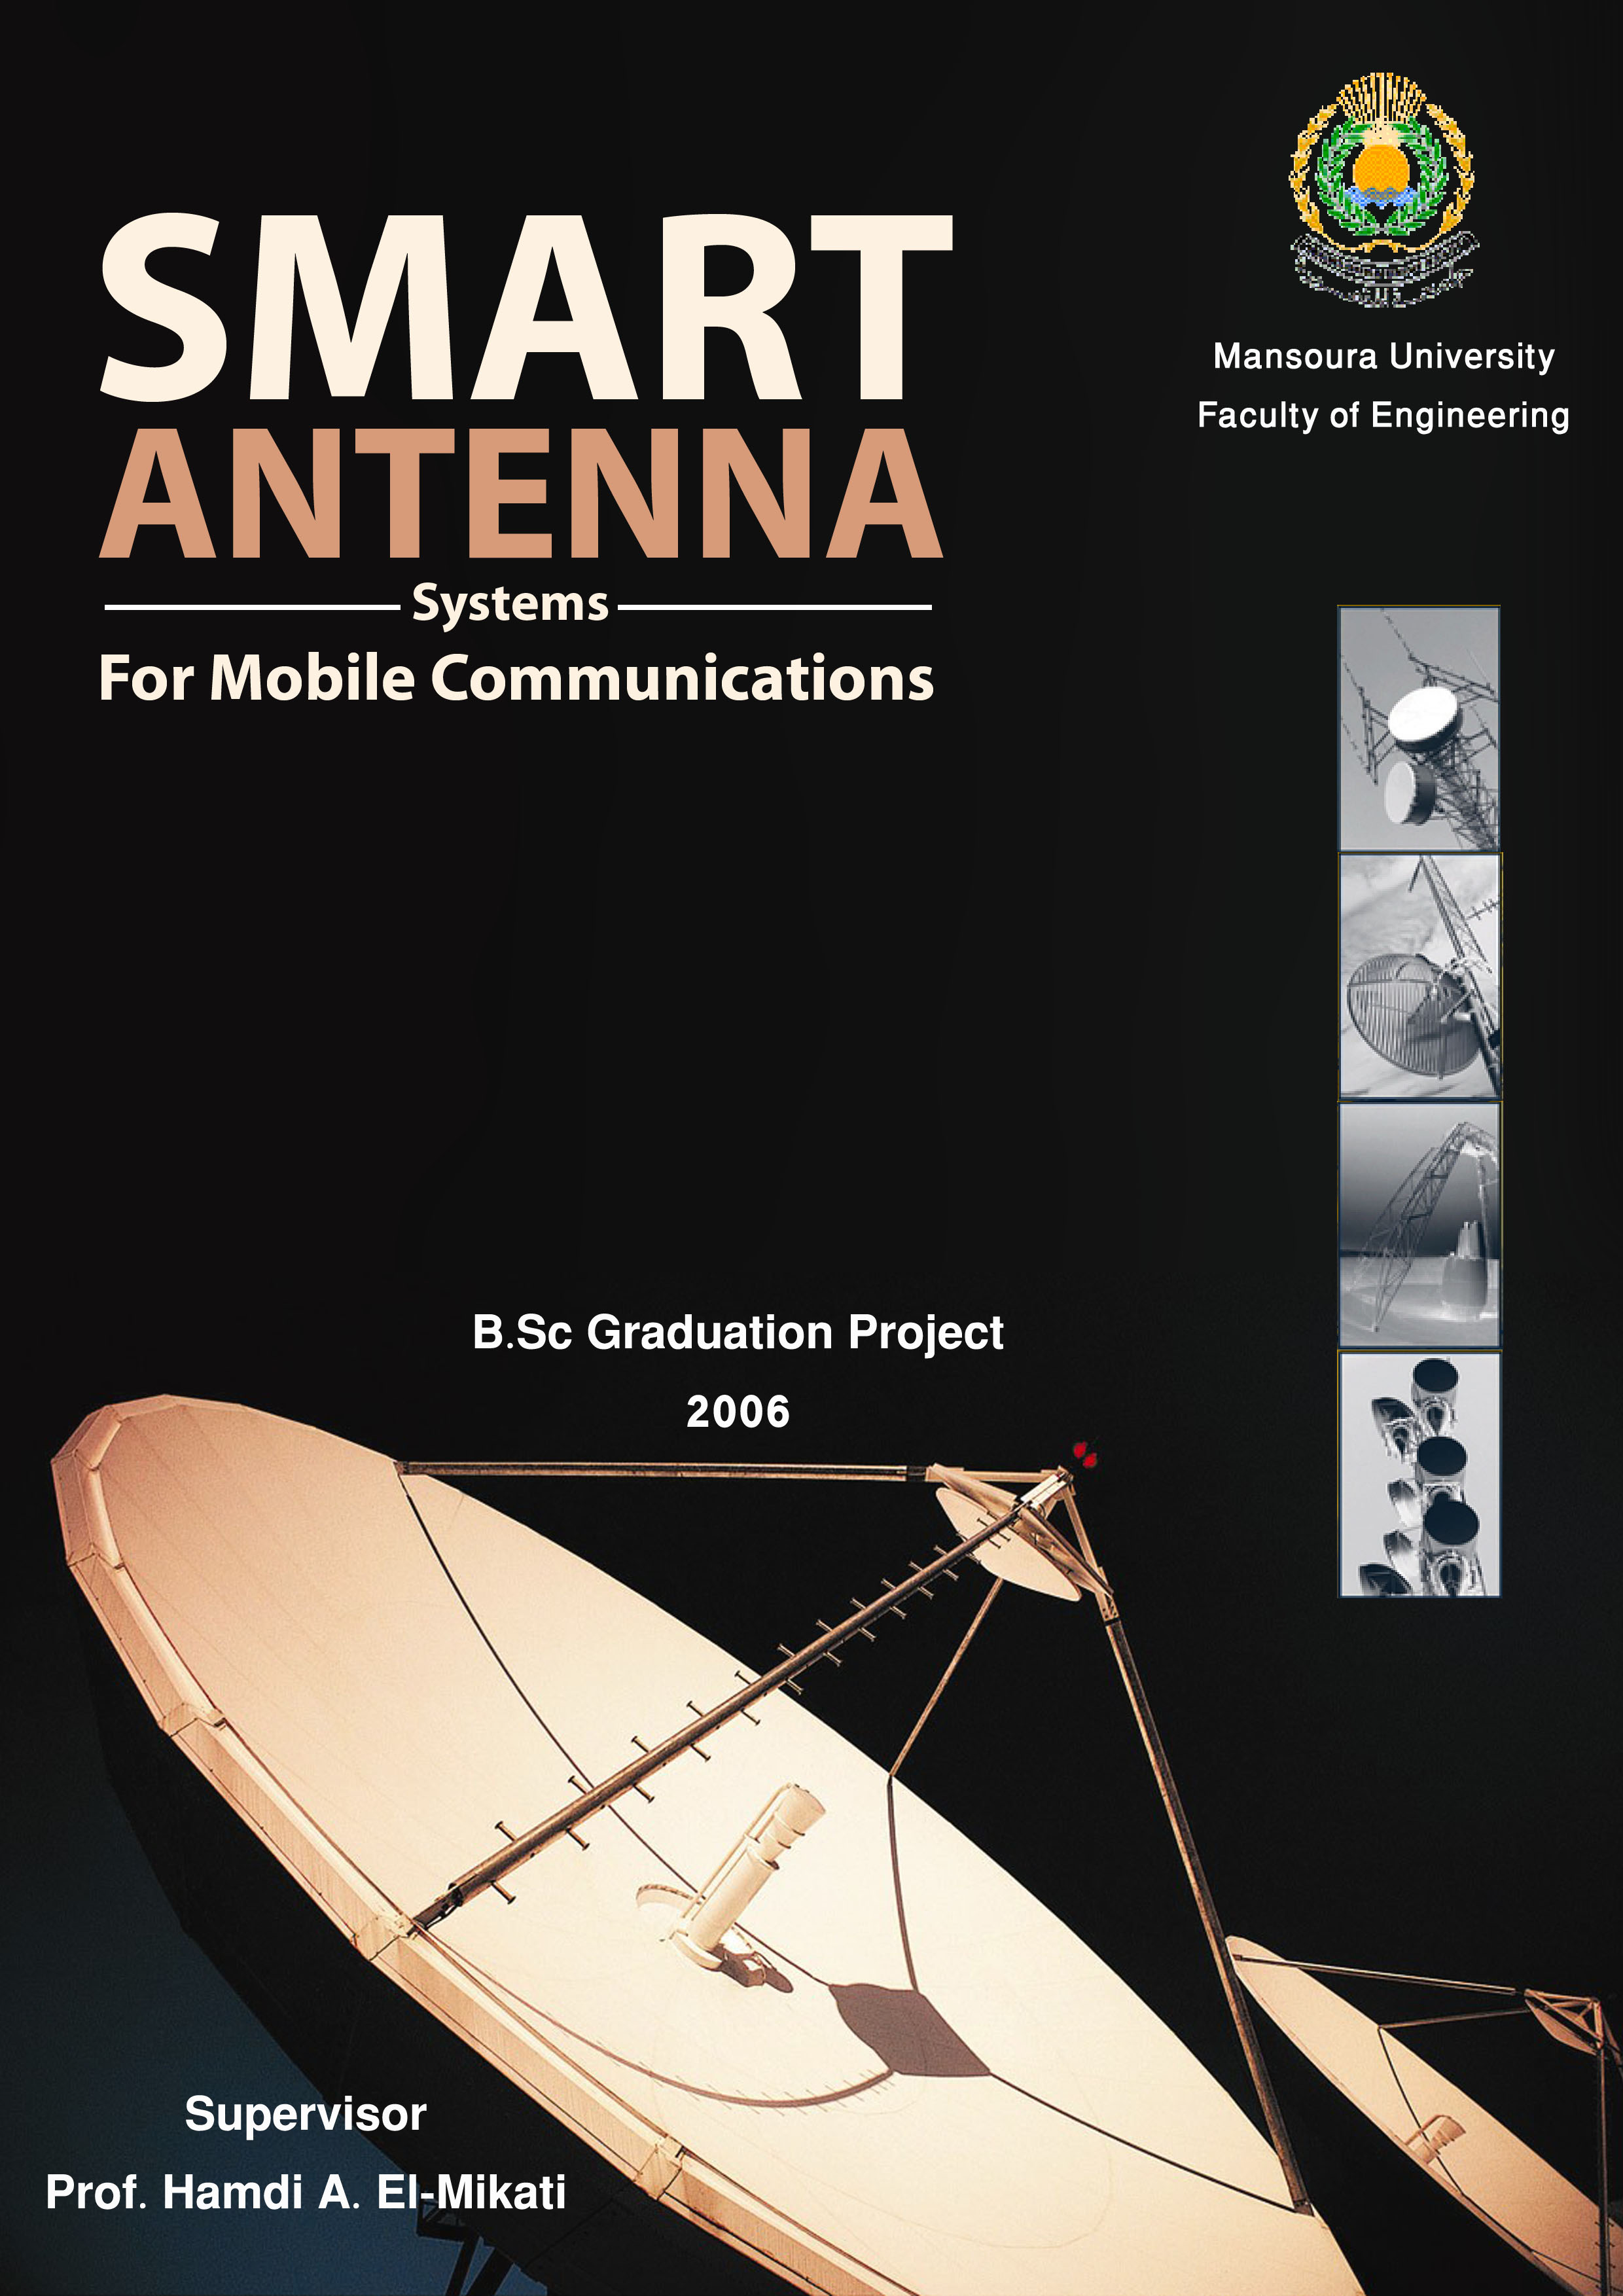 thesis on smart antenna system